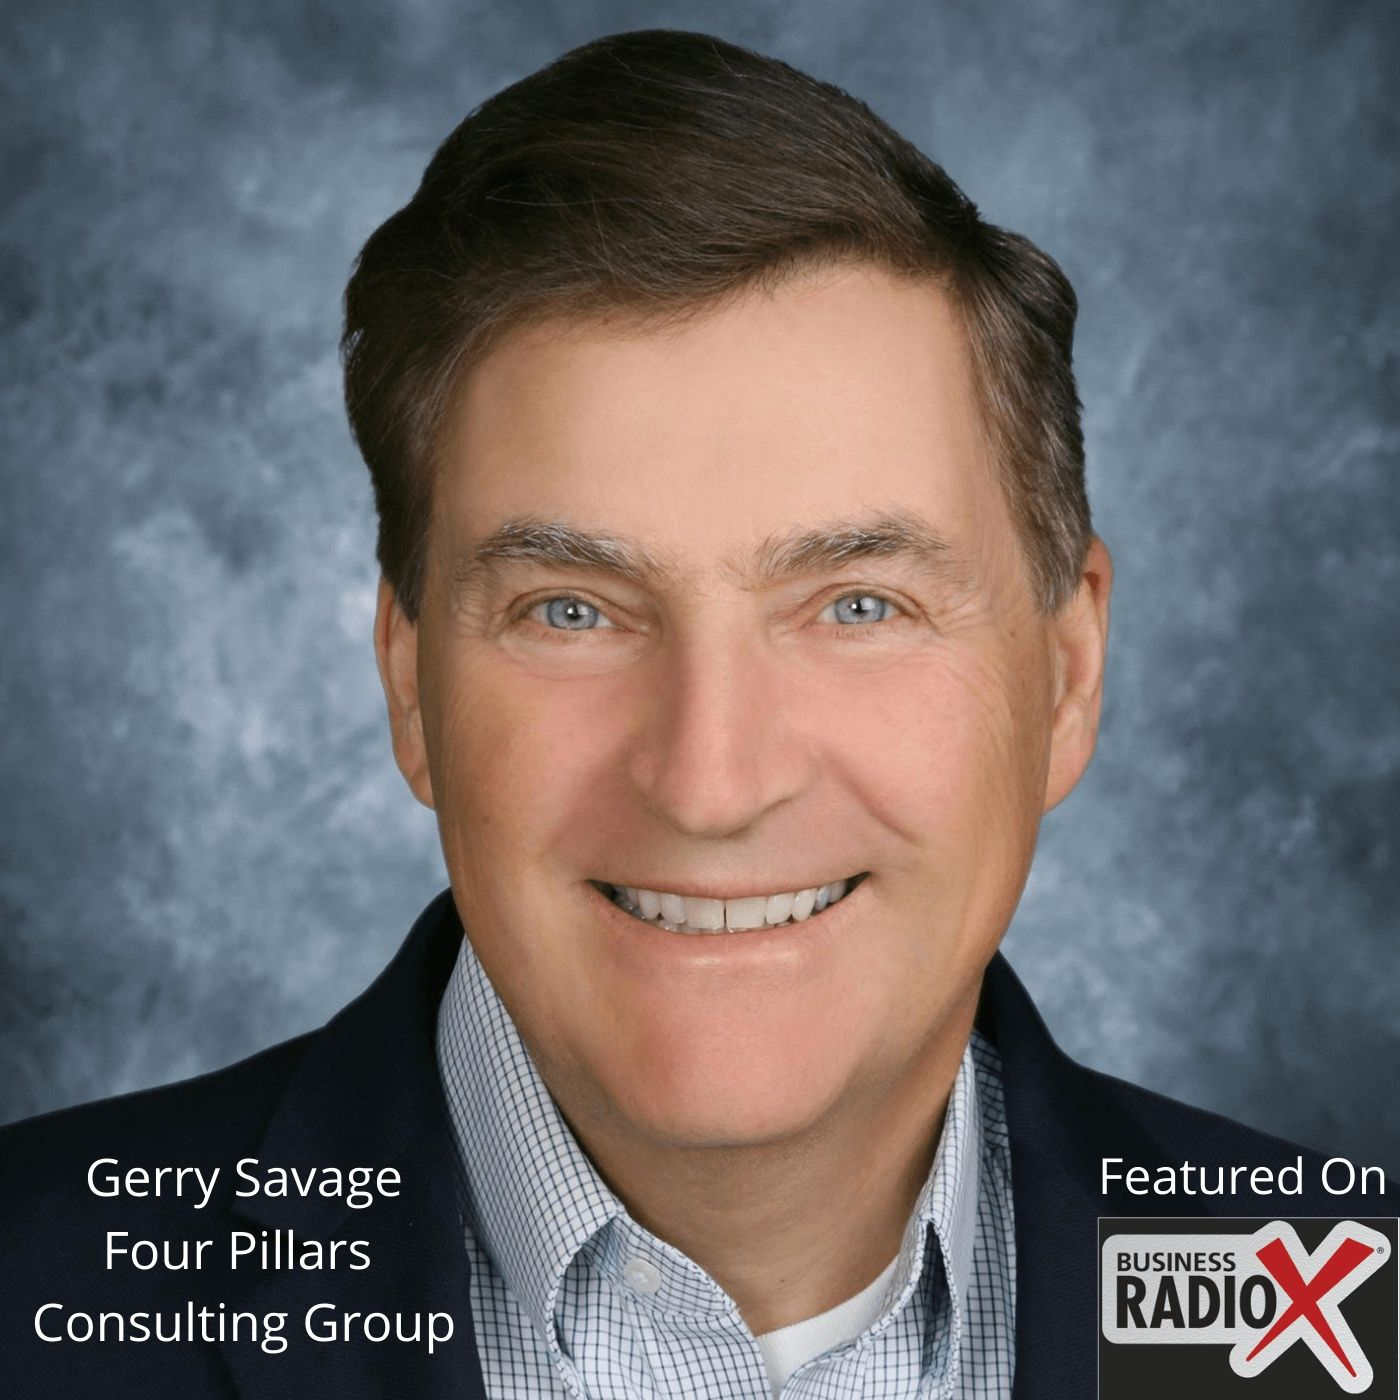 The Four Pillars of Sales, with Gerry Savage, Four Pillars Consulting Group